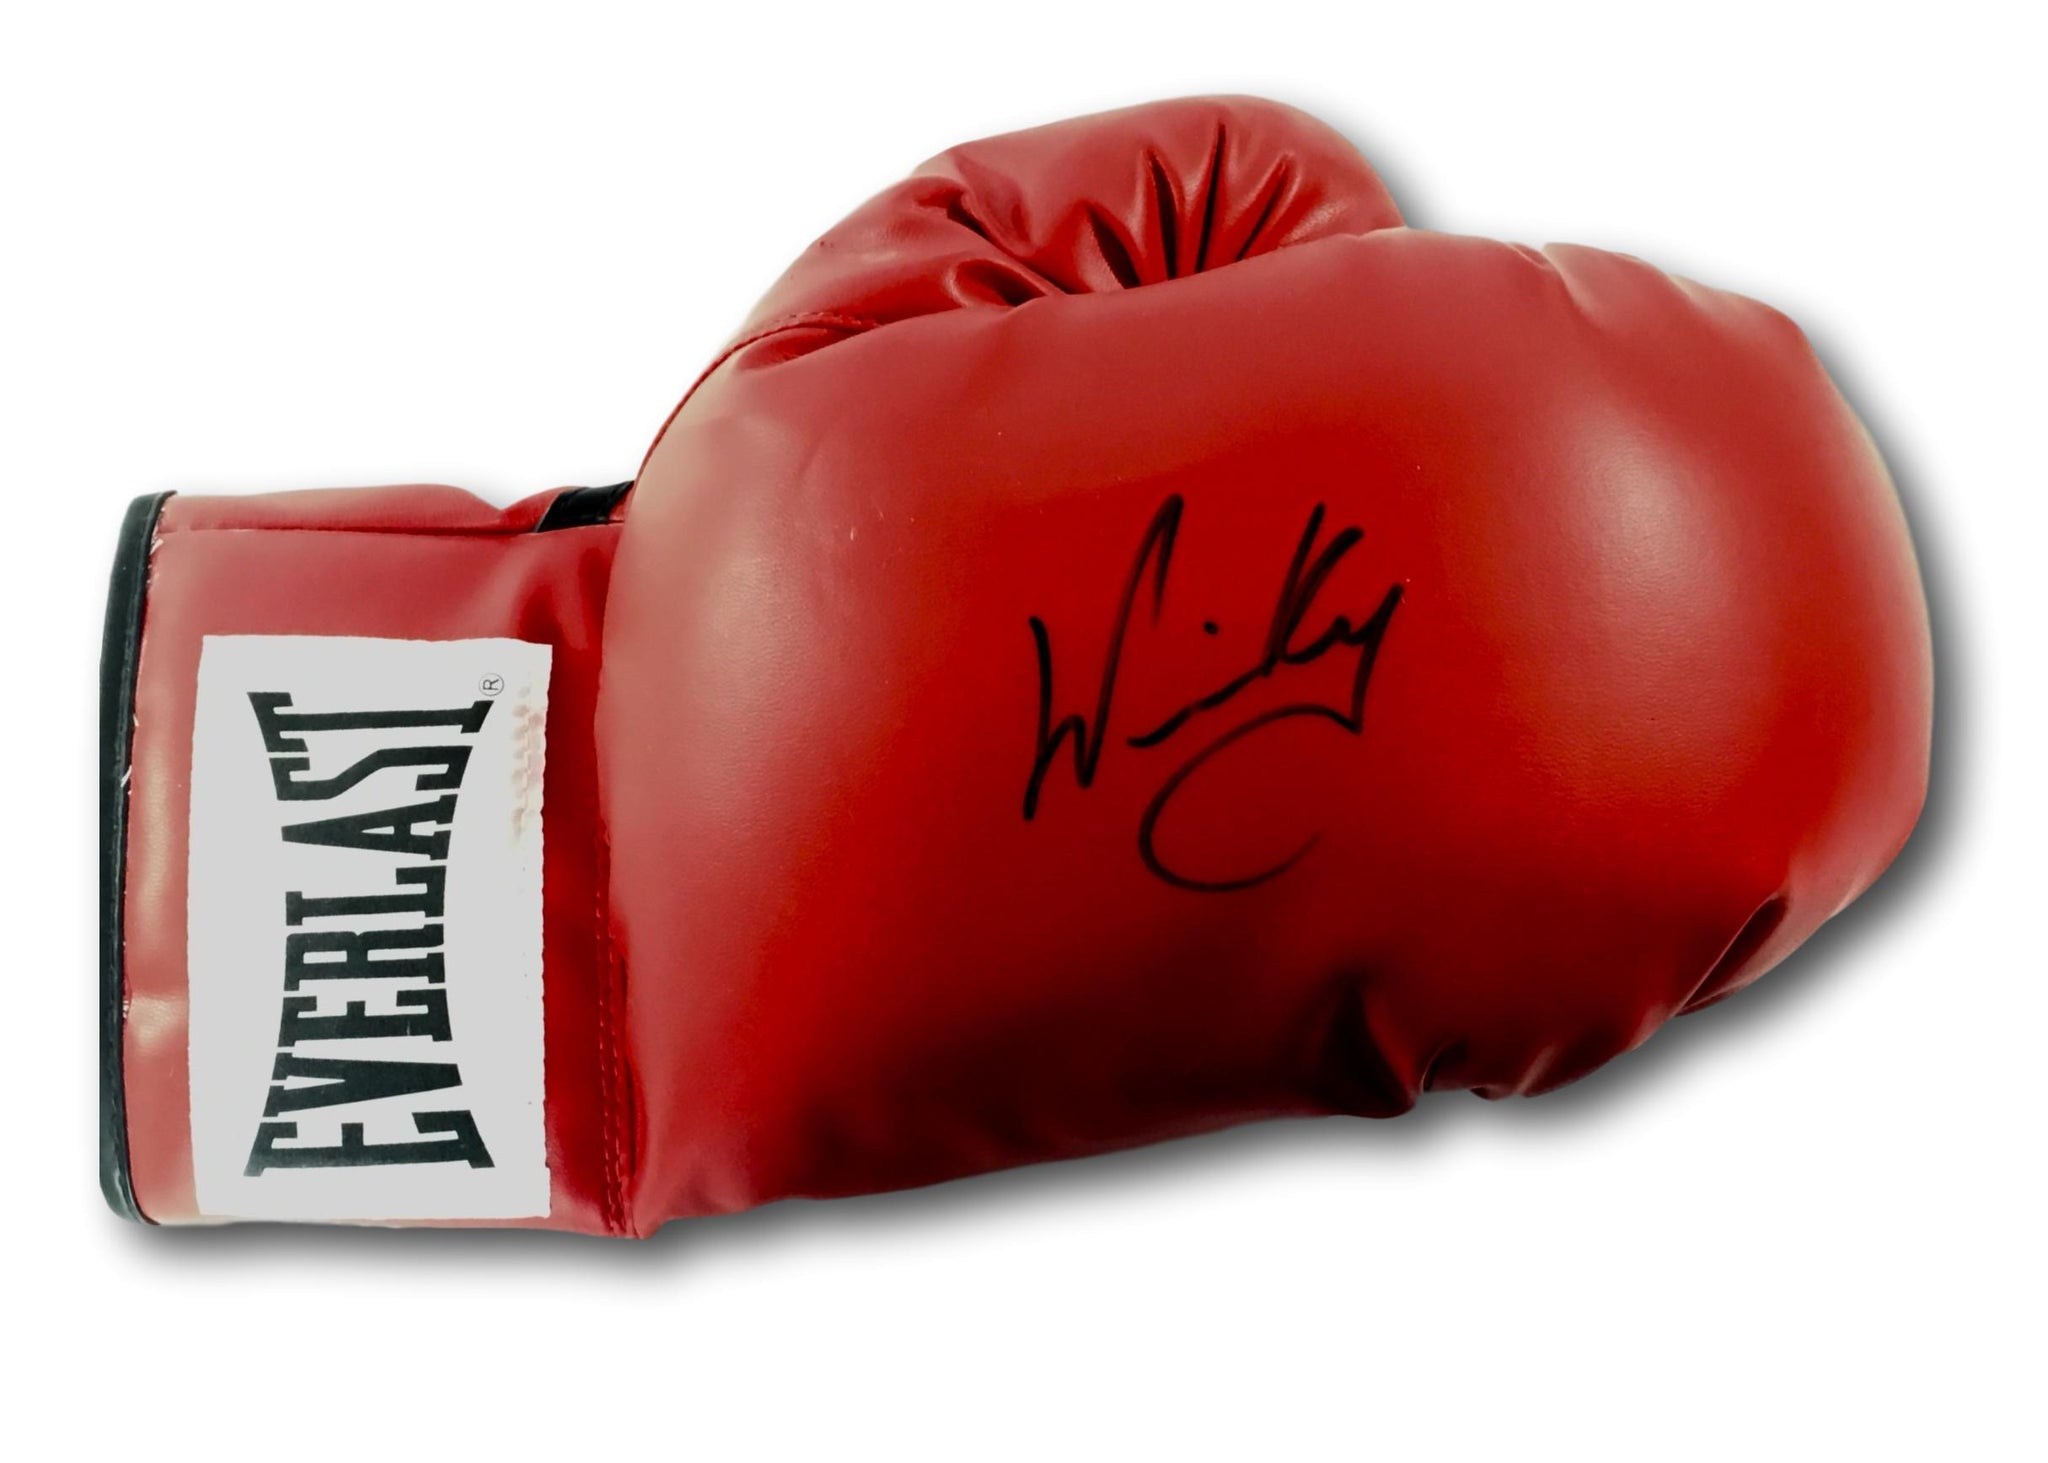 WINKY WRIGHT SIGNED BOXING GLOVE